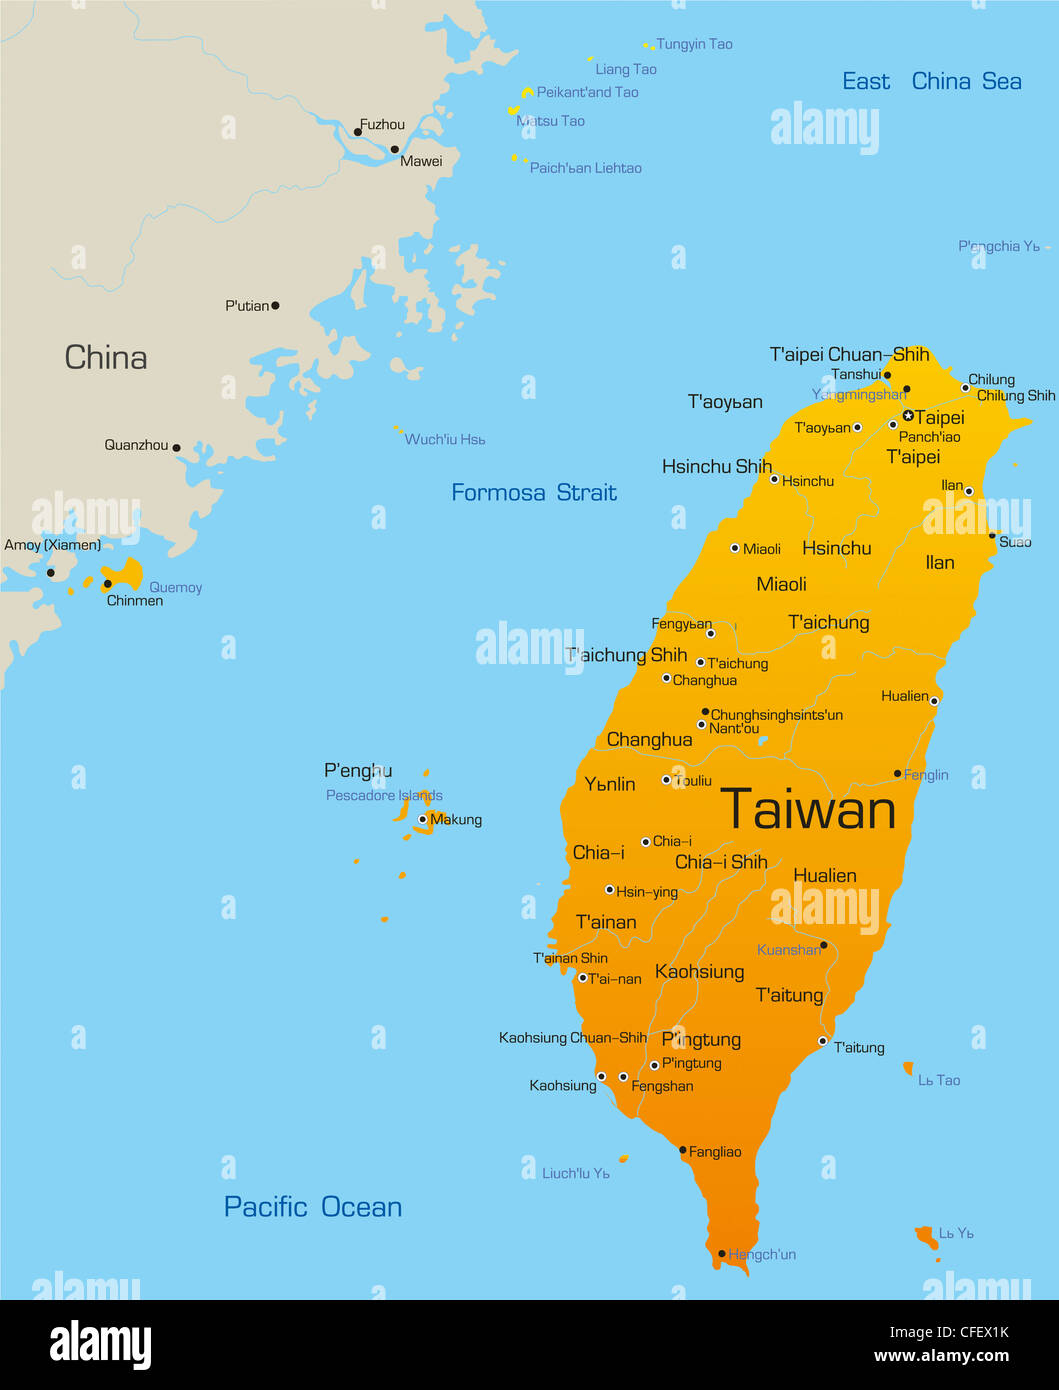 Vector Map Of Taiwan Country Stock Photo Royalty Free Image - Map of taiwan